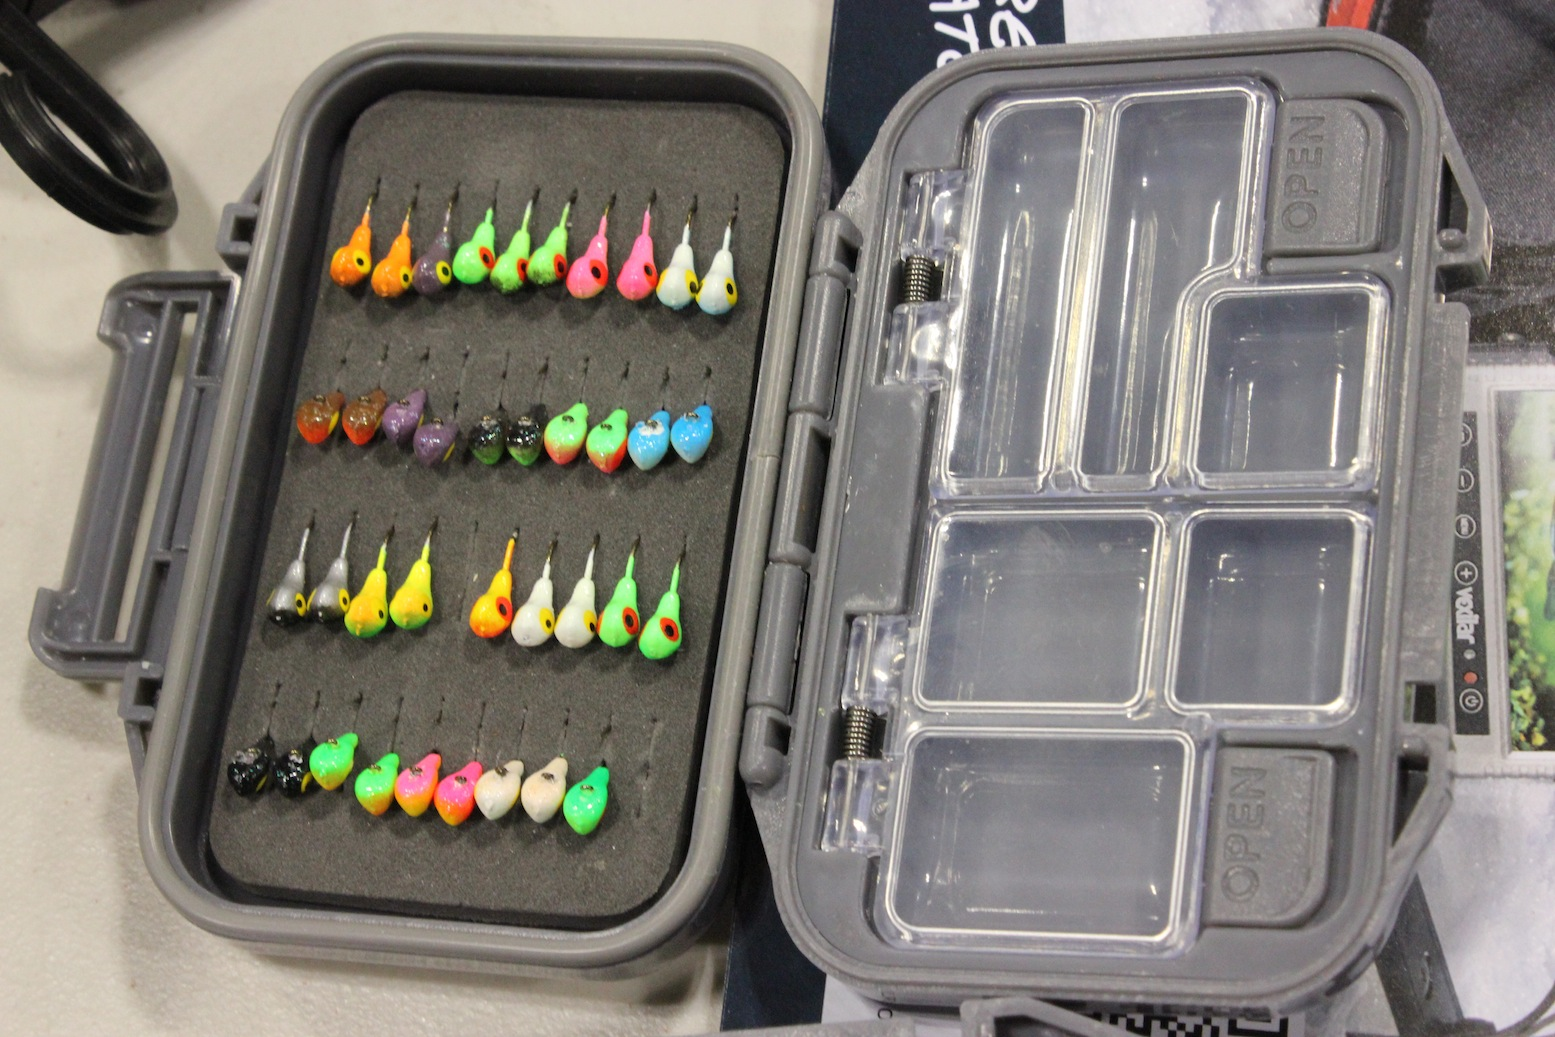 This is Clam's new Ice Armor Jig Box. Spotted it on the desk Dave Genz was using at the Ice